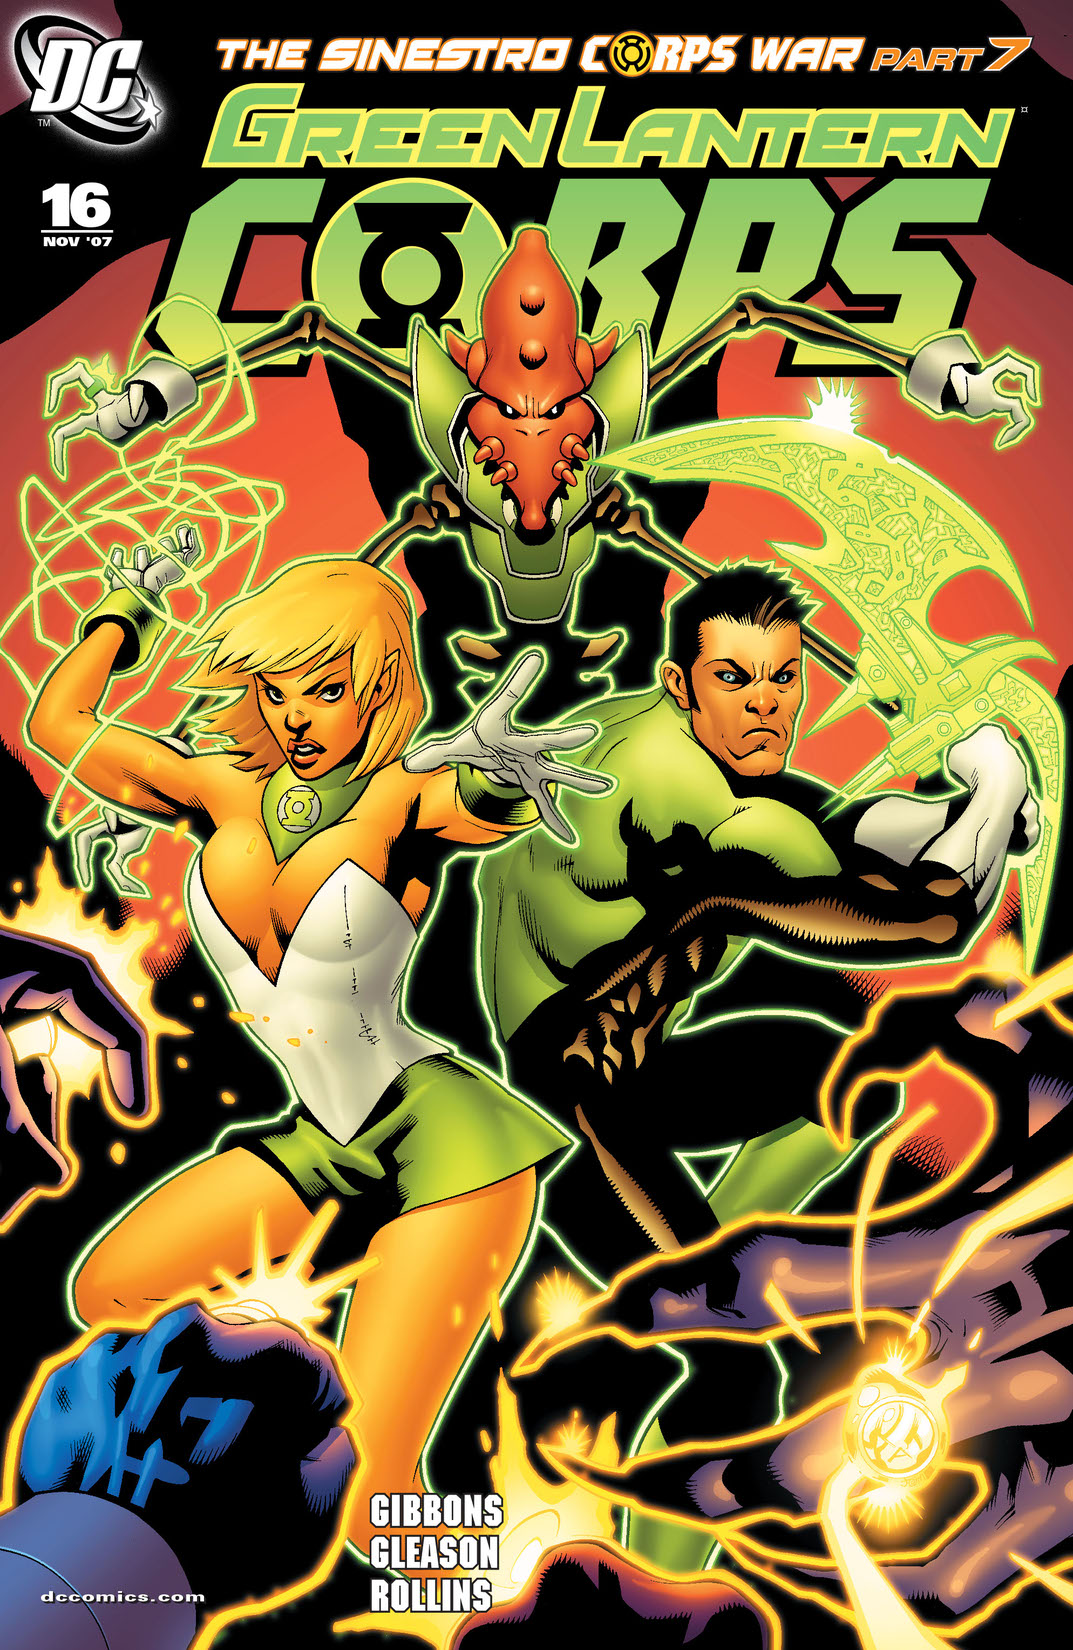 GREEN LANTERN THE SINESTRO CORPS WAR TPB Complete Story 336 pages DC COMICS TP